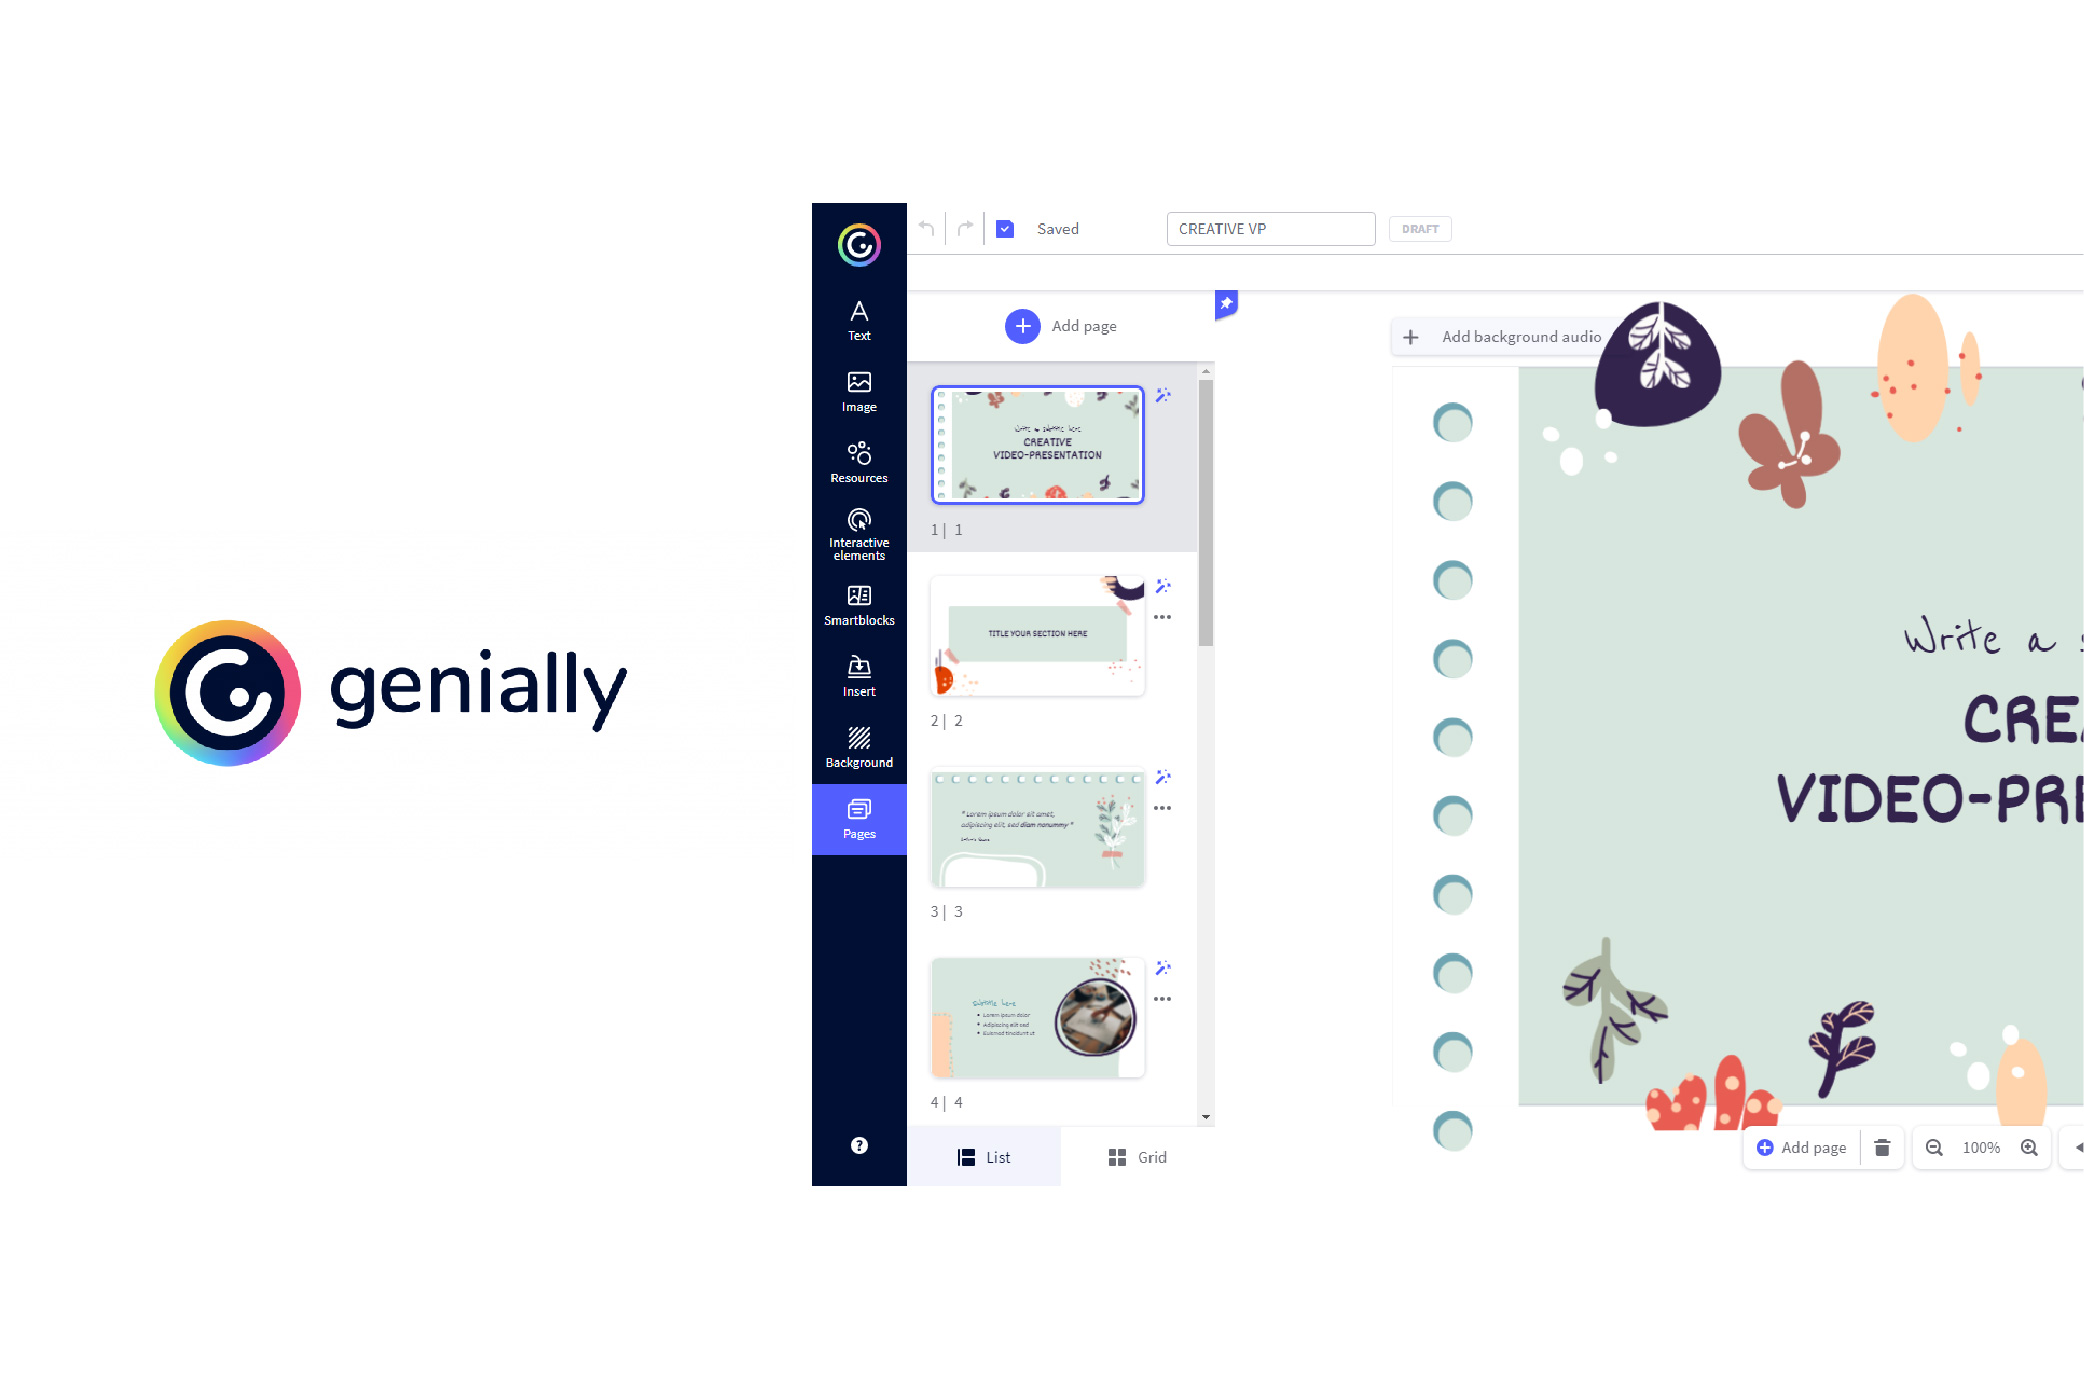 Genially graphic software interface